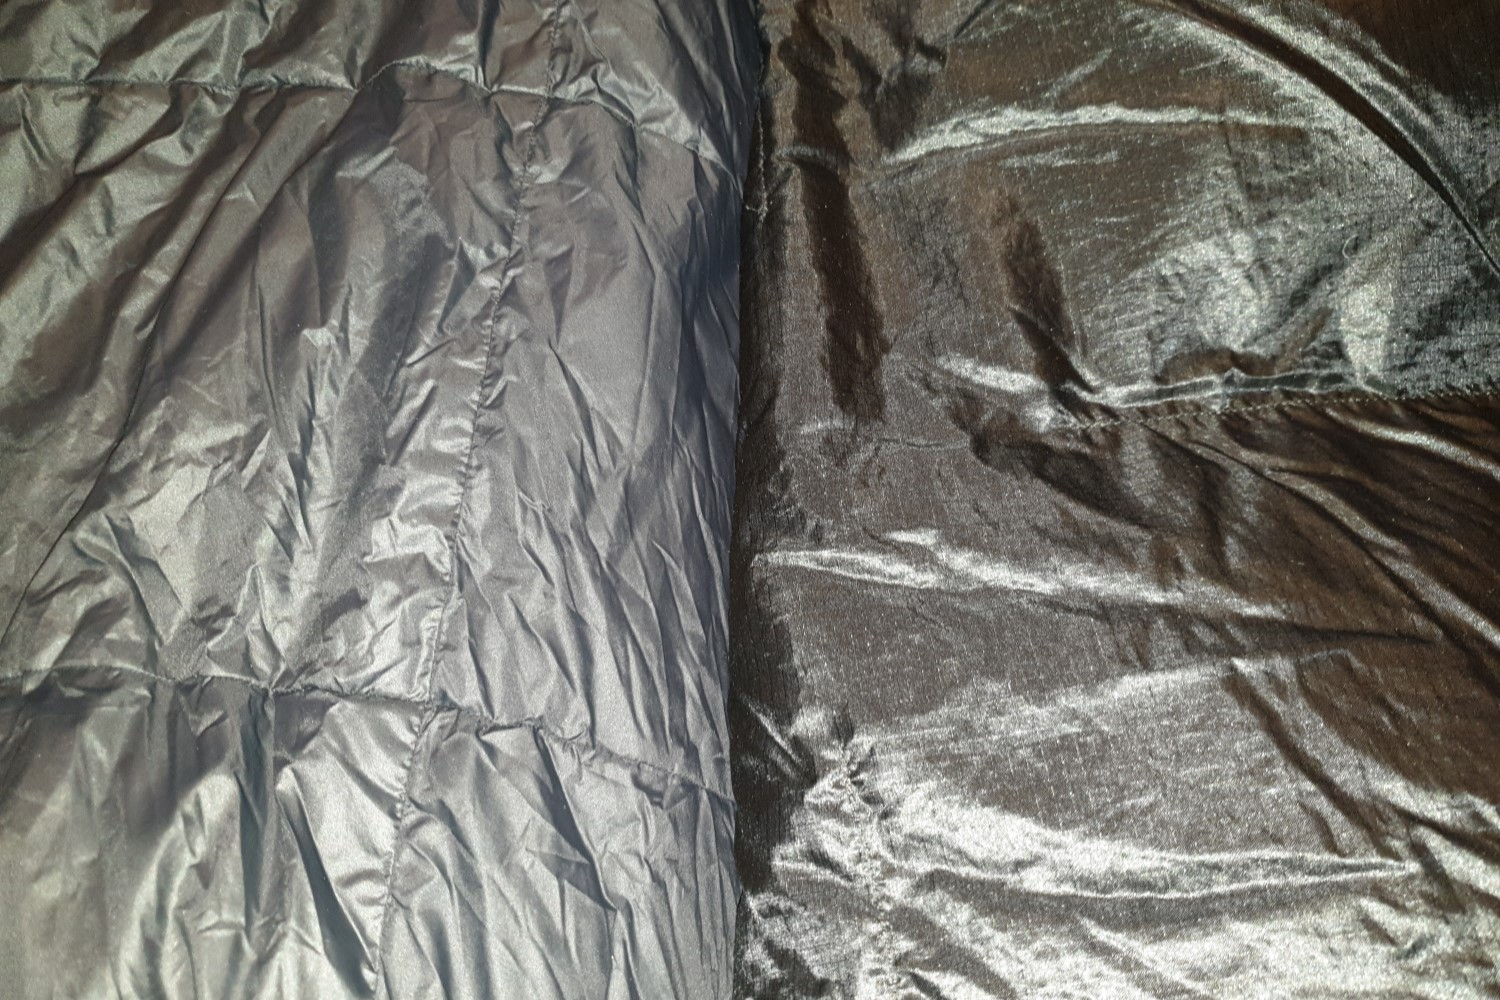 A 30 denier liner fabric found on a Feathered Friends winter sleeping bag (left) vs a 10 denier ultralight liner fabric found on an Enlightened Equipment backpacking quilt (right).